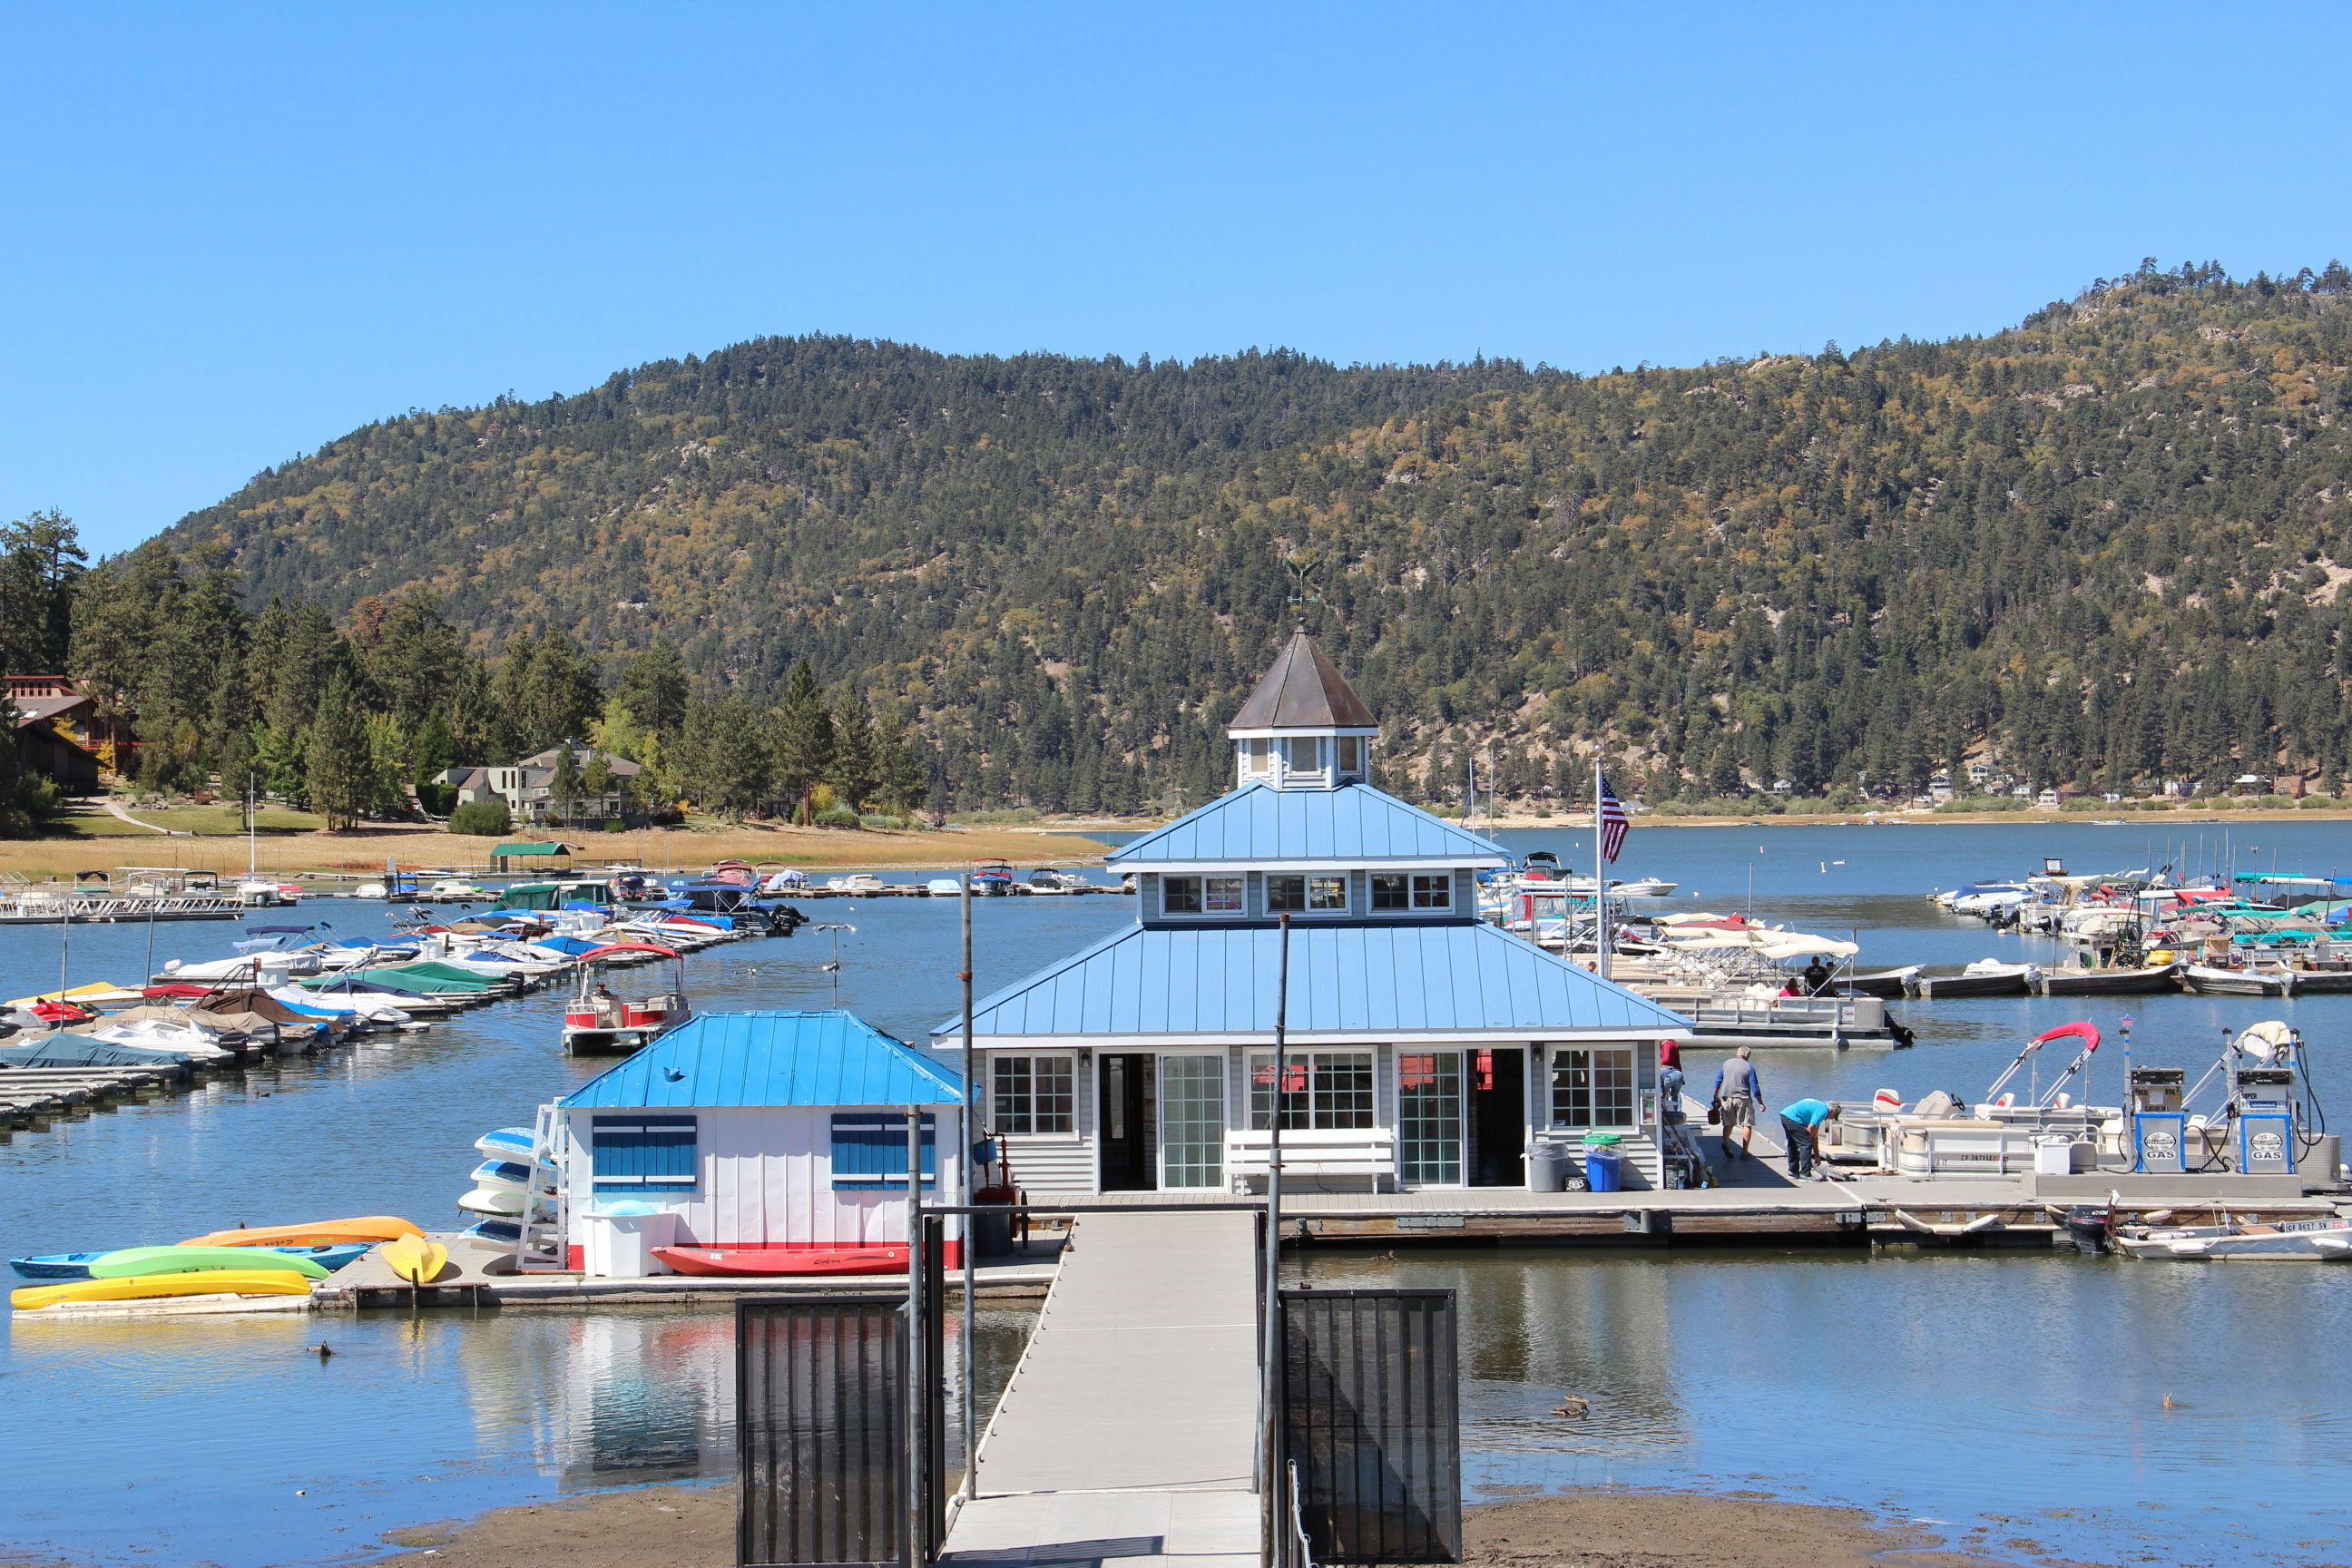 holloway's marina, big bear